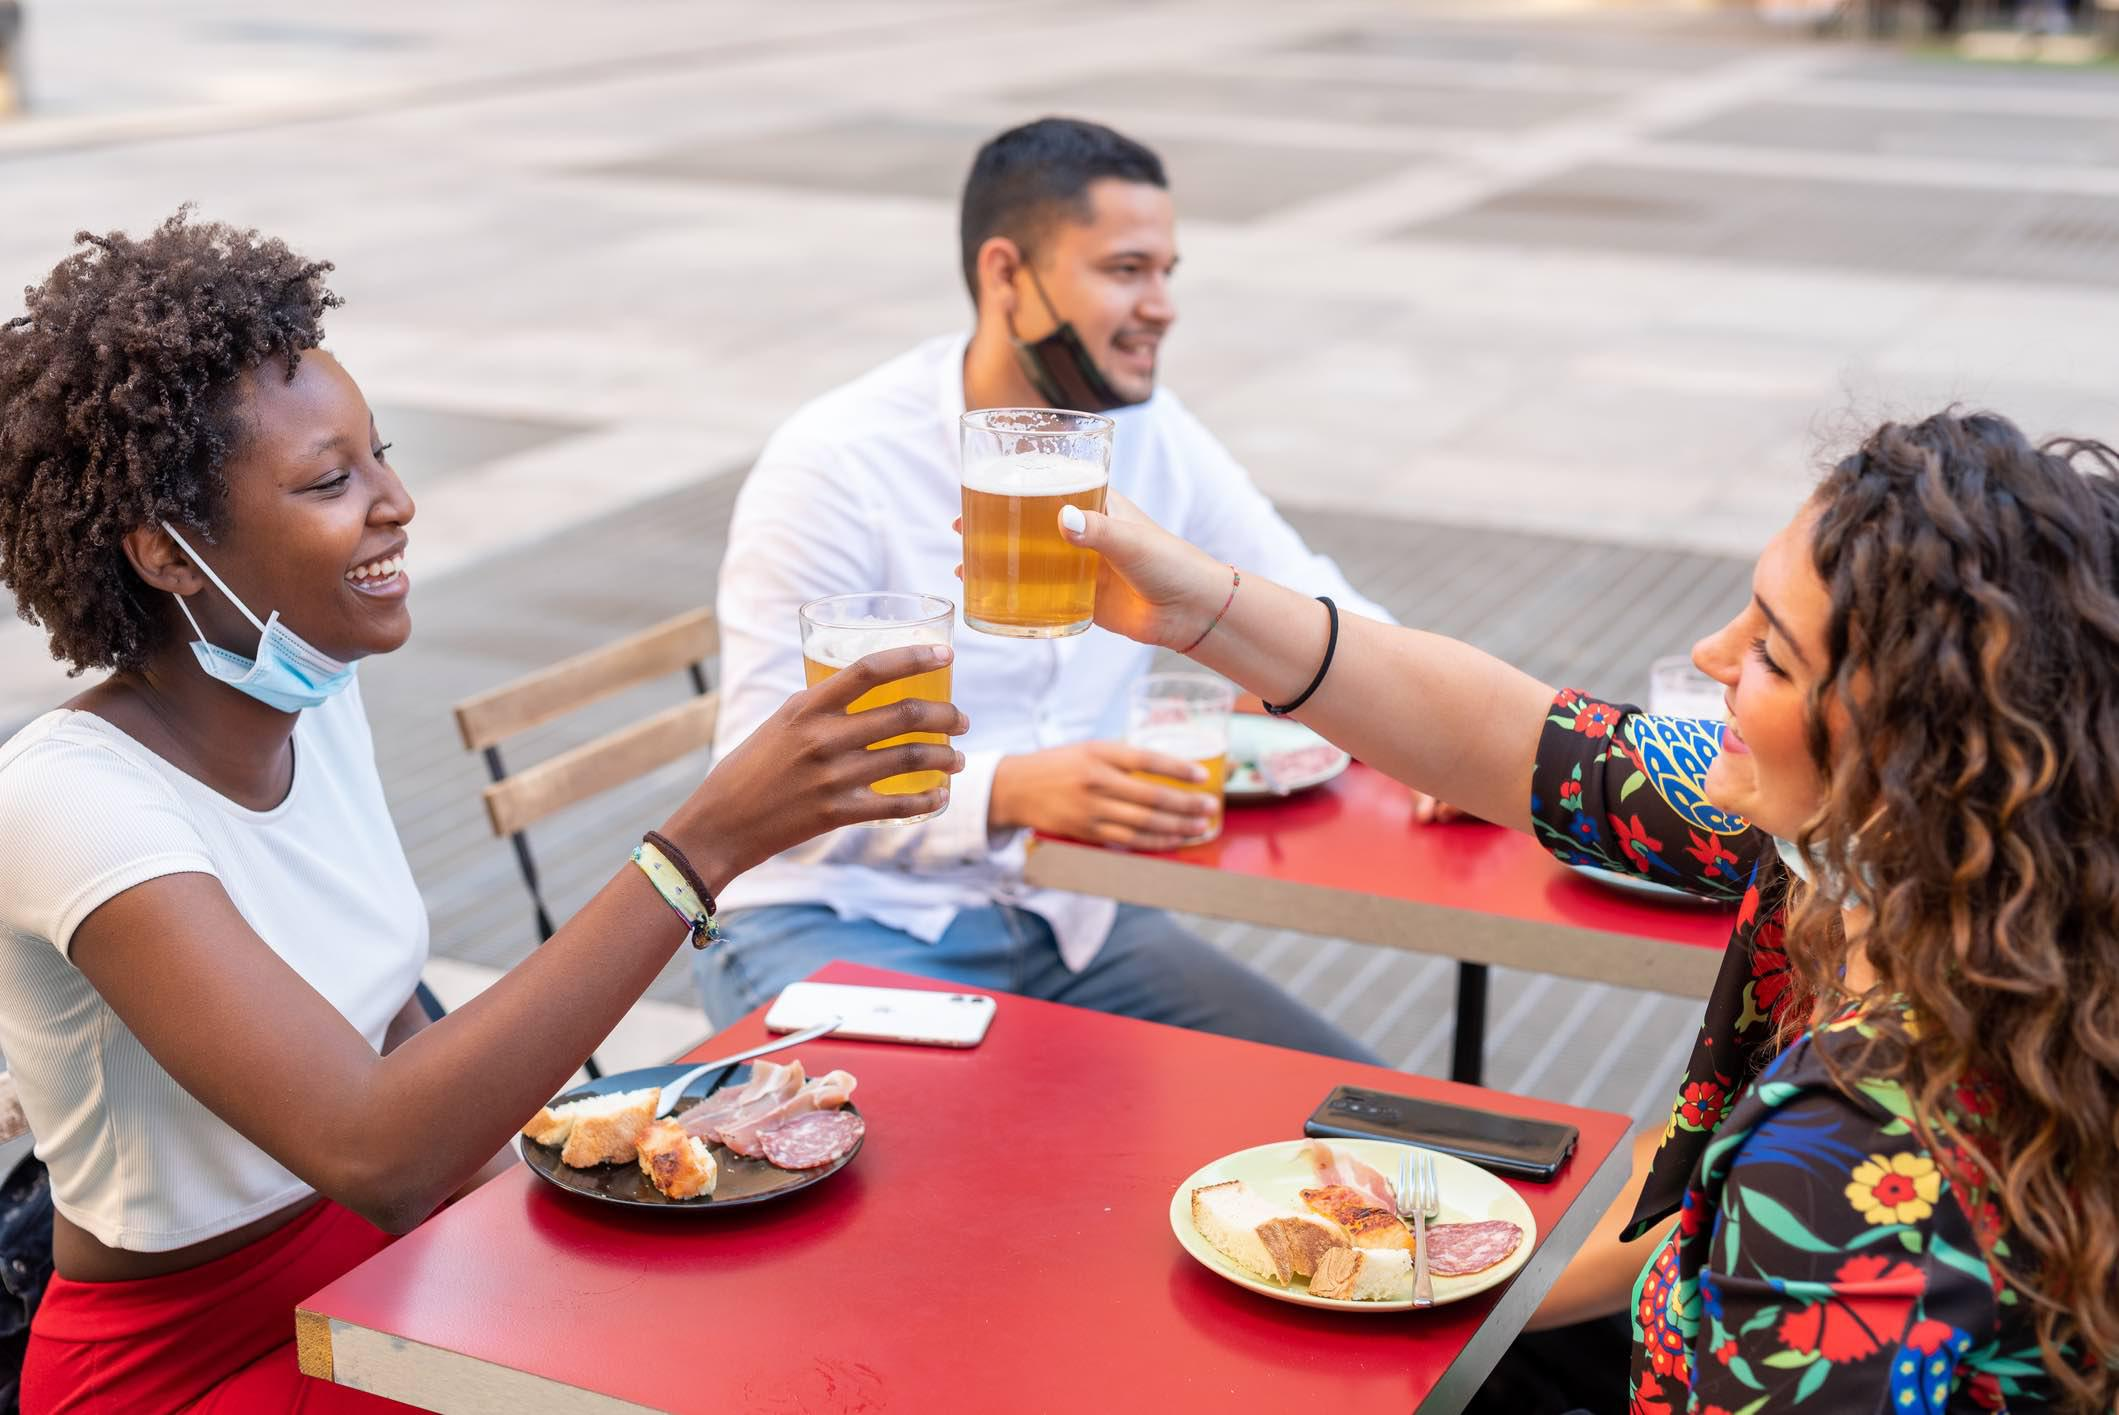 Six Tips for Socializing After You've Been Vaccinated